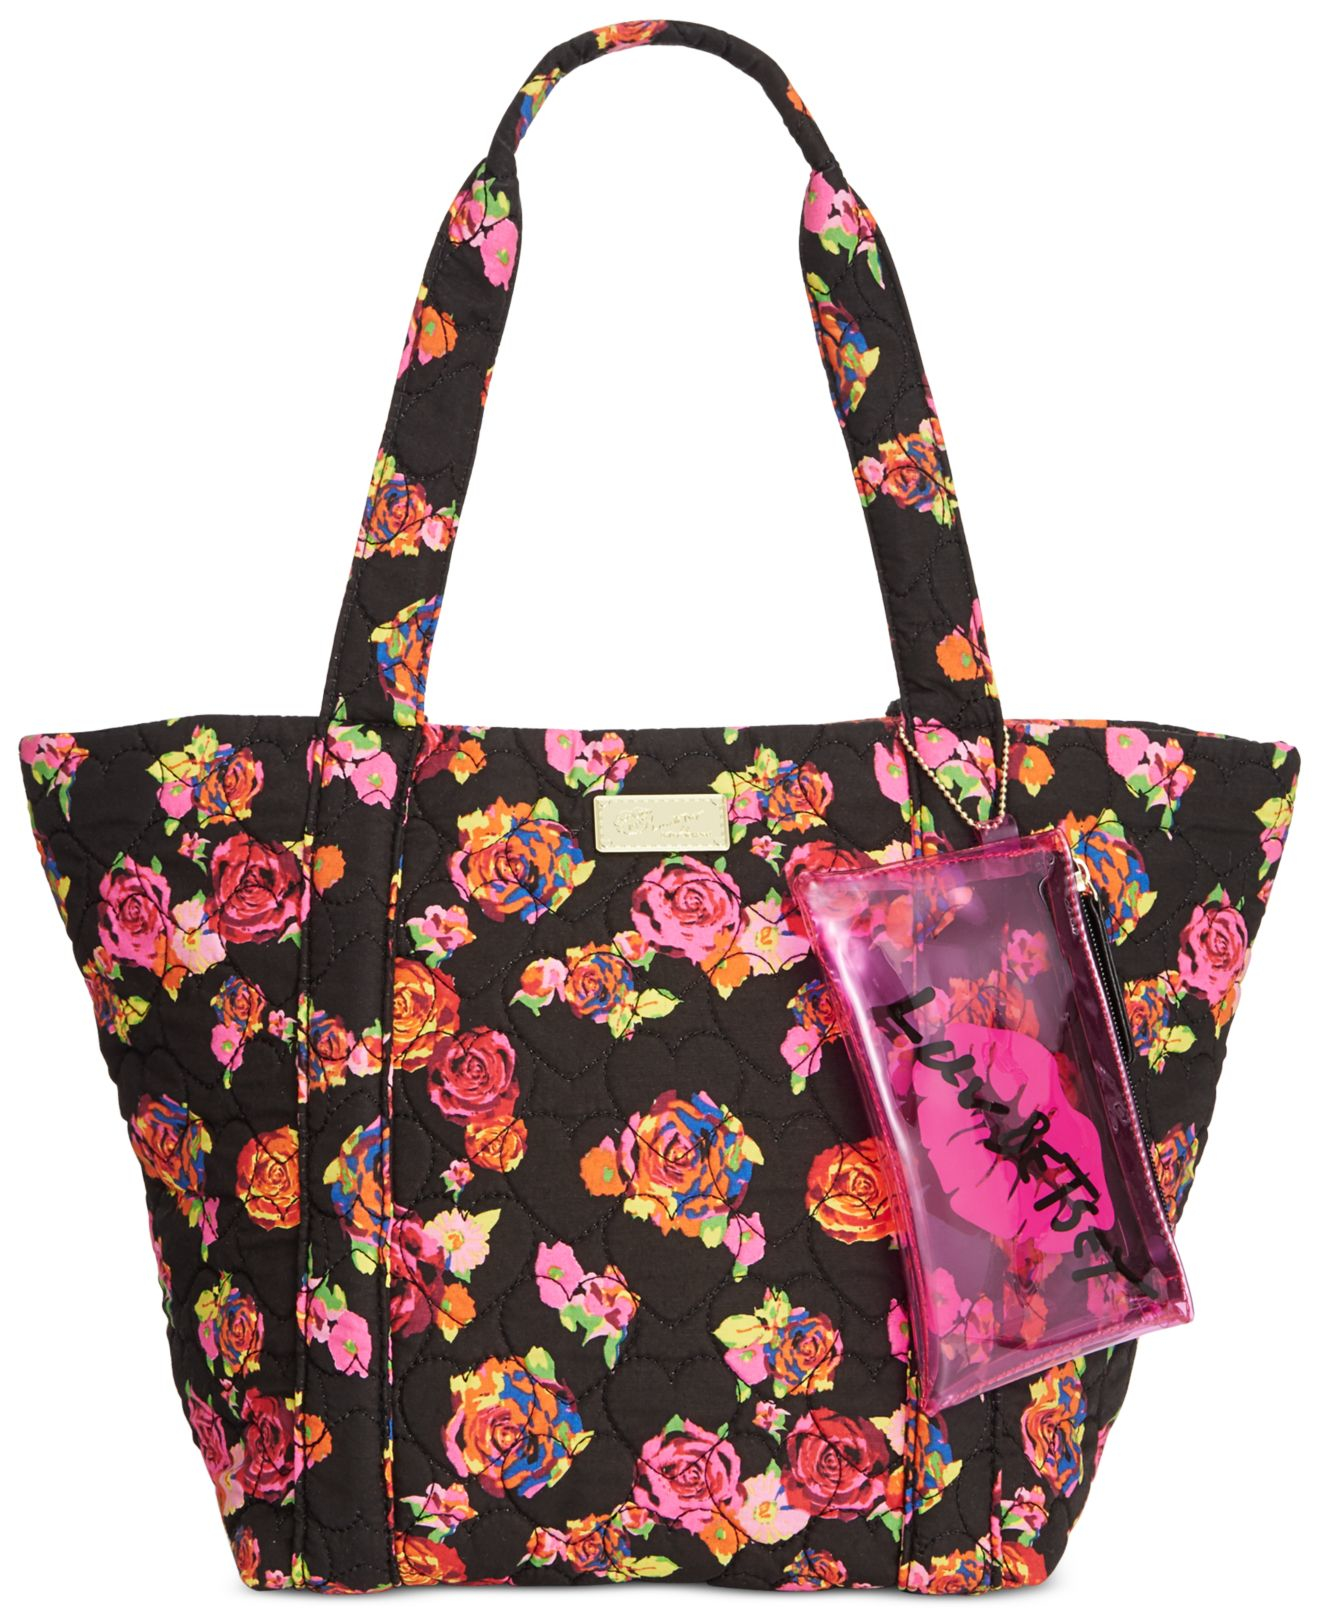 Lyst - Betsey Johnson Luv Betsey Floral Tote In Black